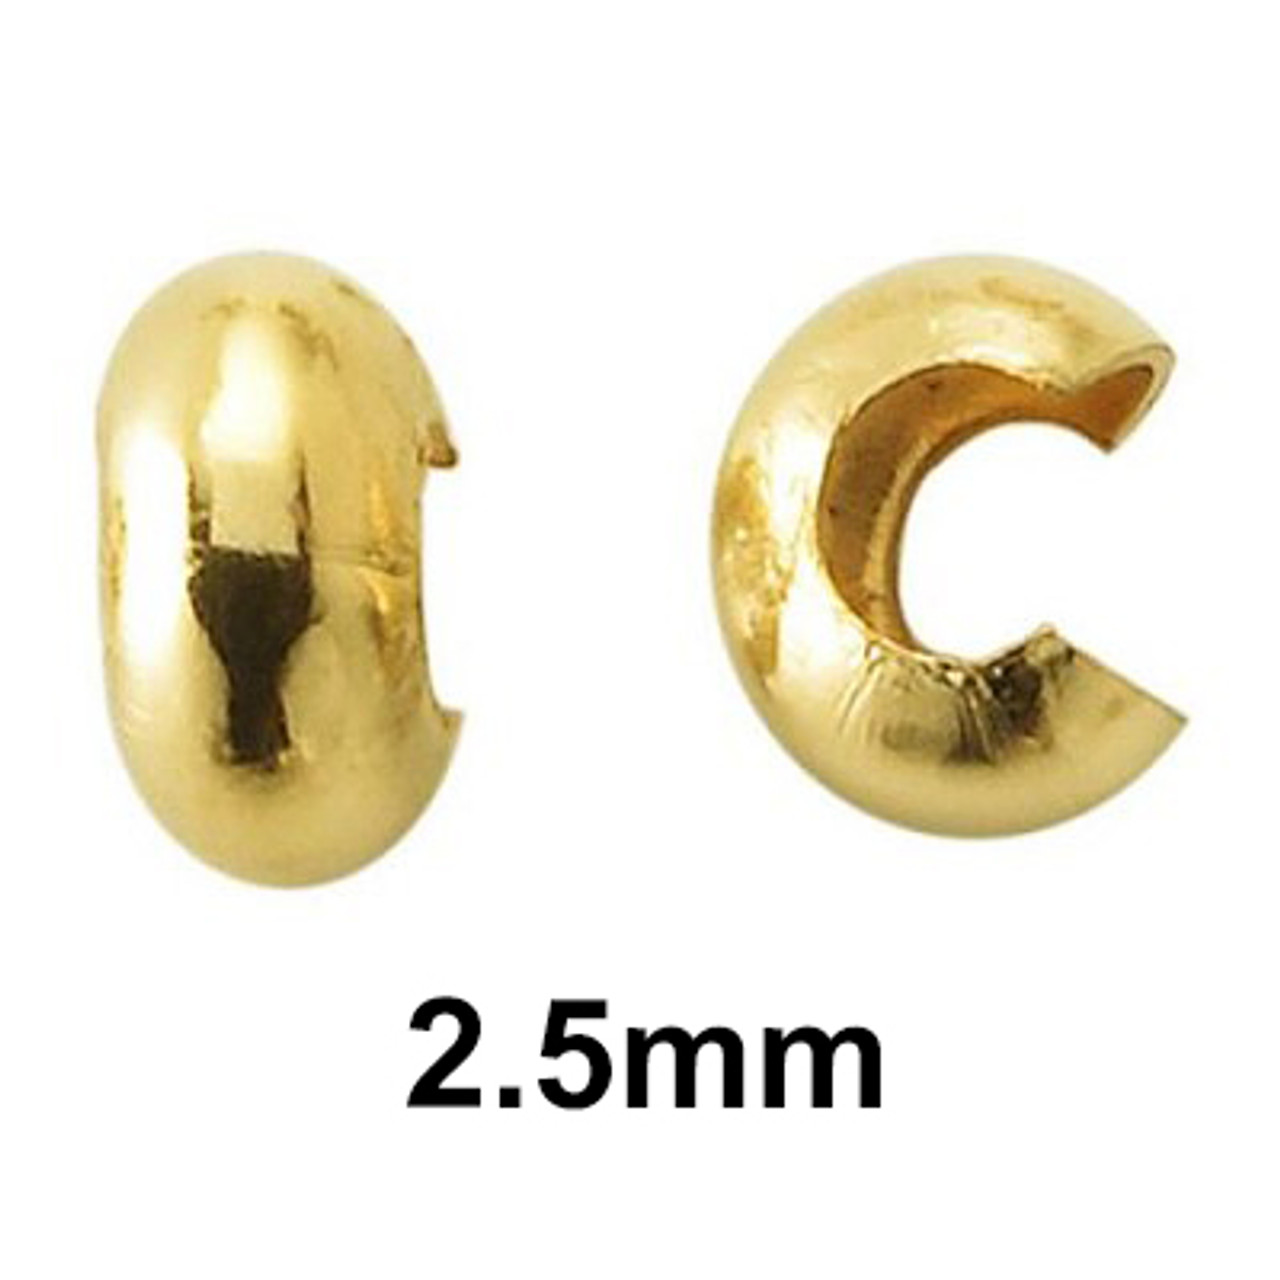 2.5mm 12k gold filled crimp covers aka open balls. Perfect for the DIYer and custom jewelery maker.